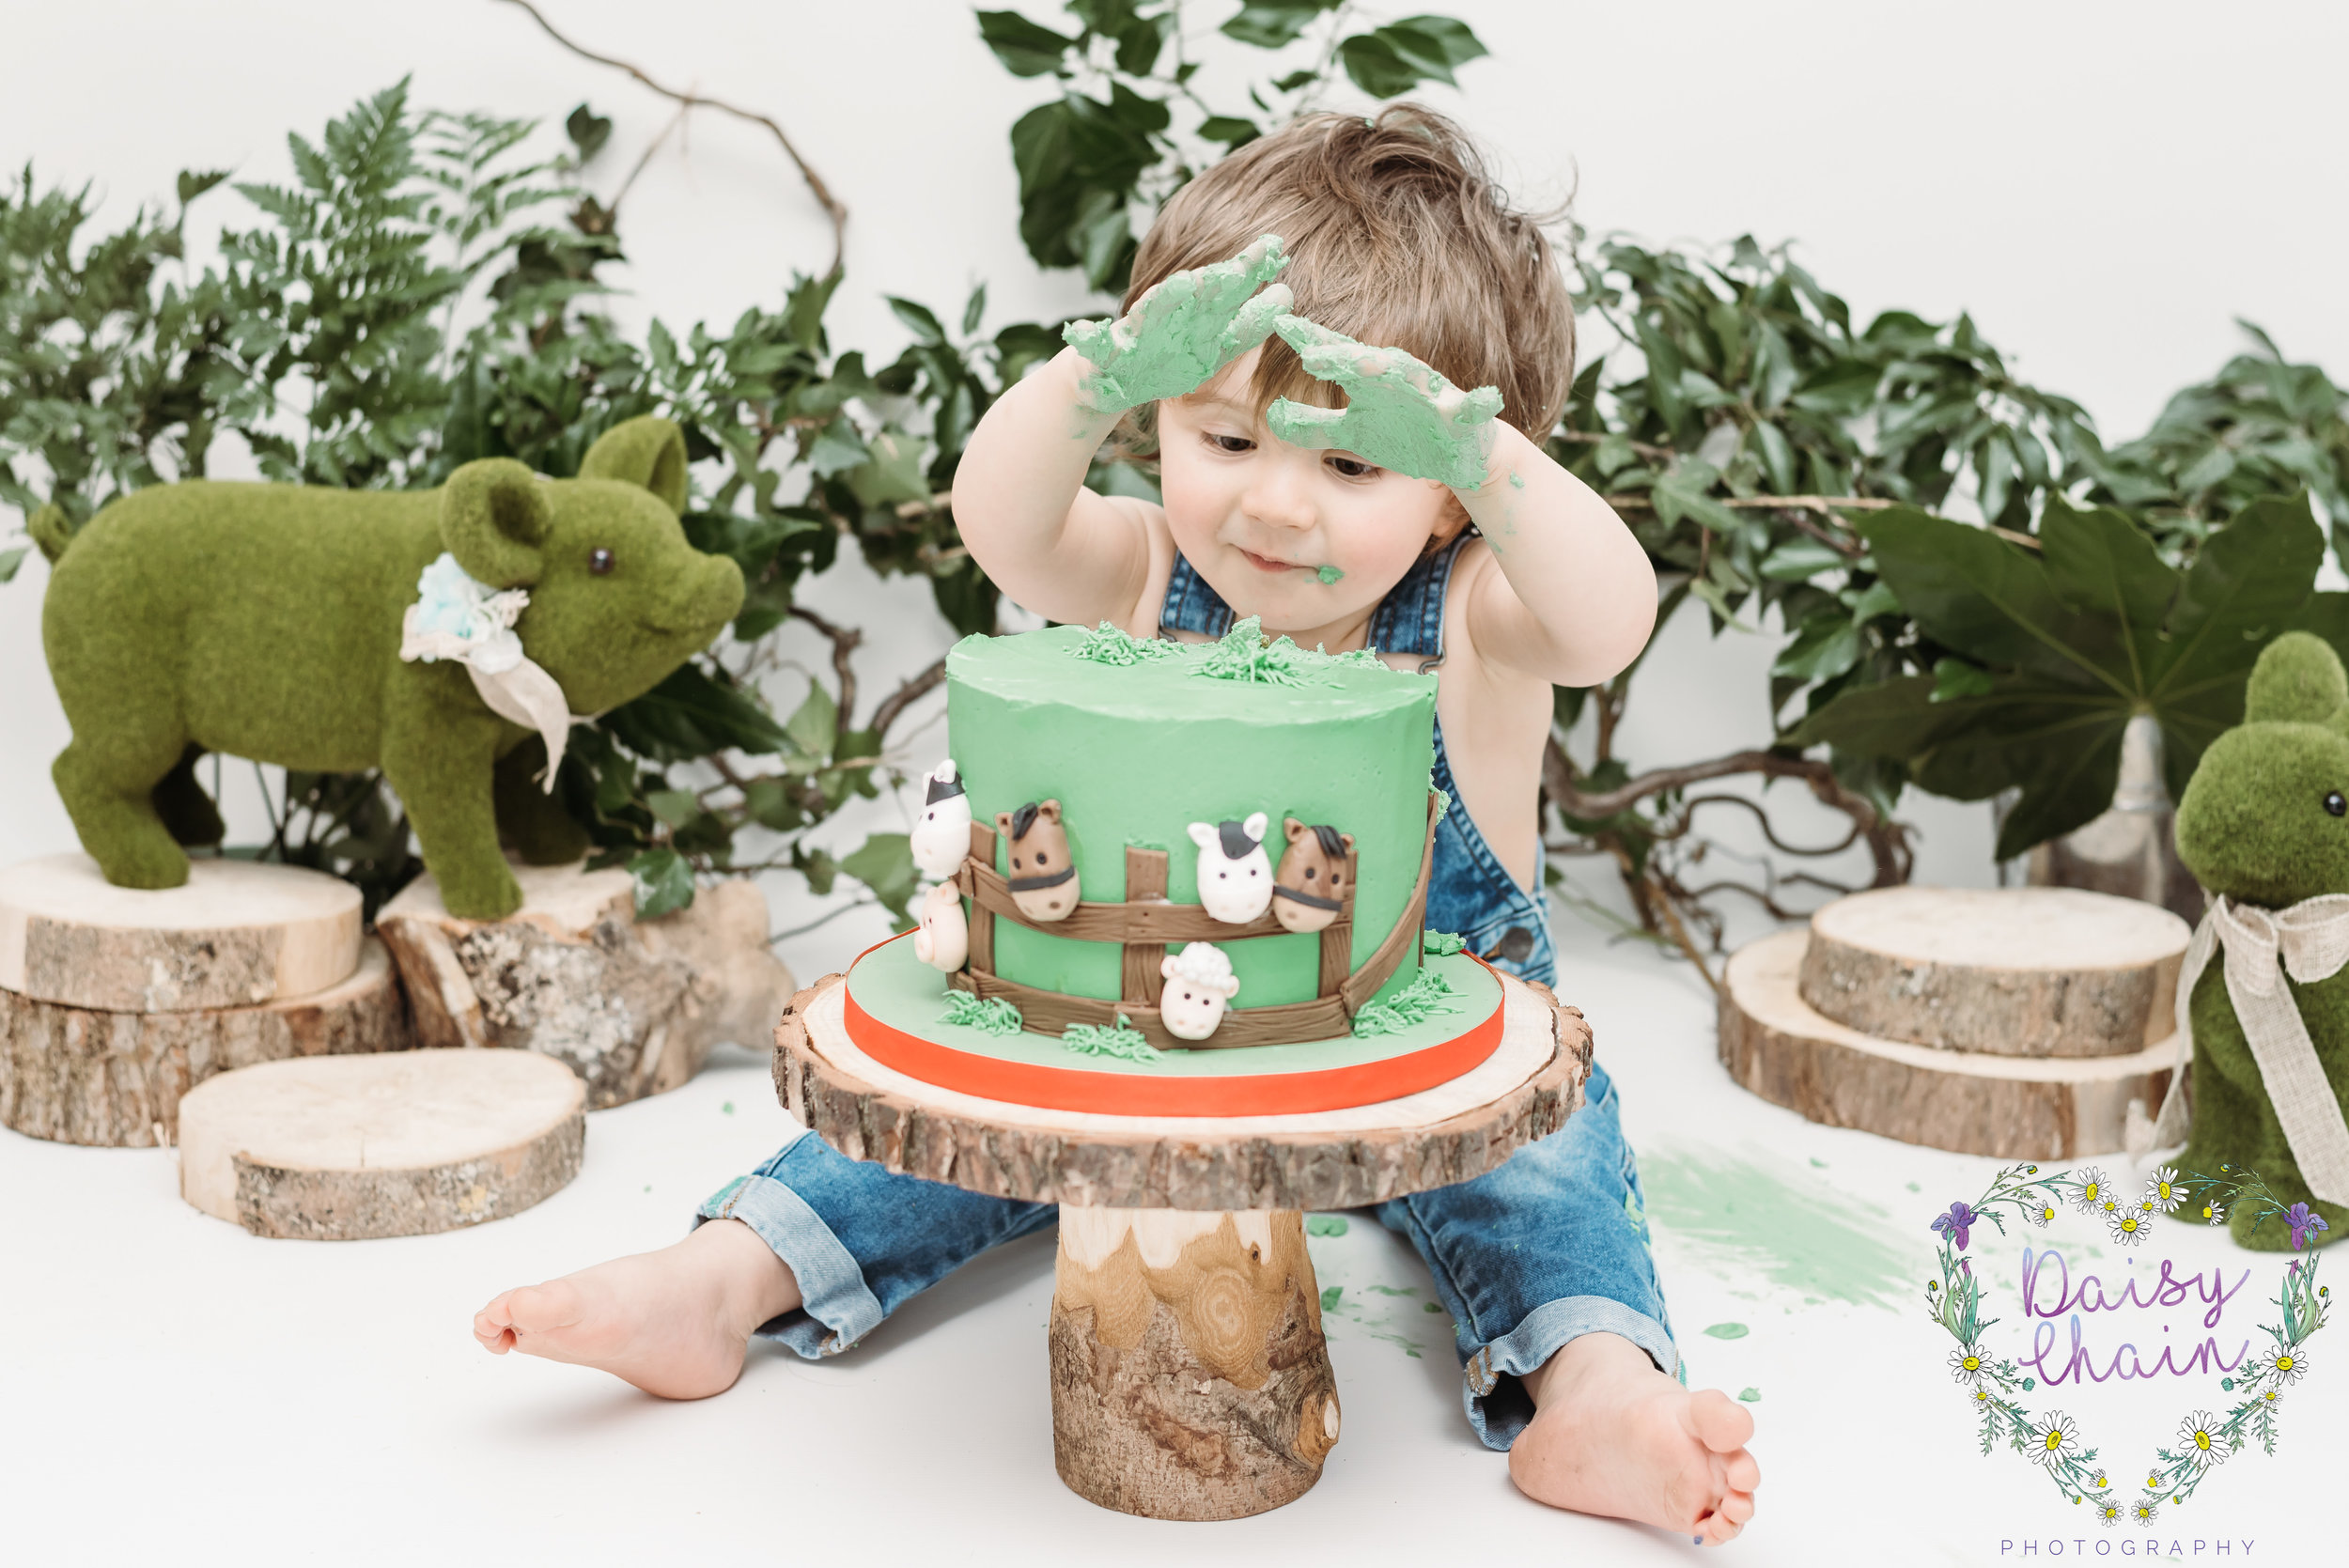 preston family photographer - cake smash